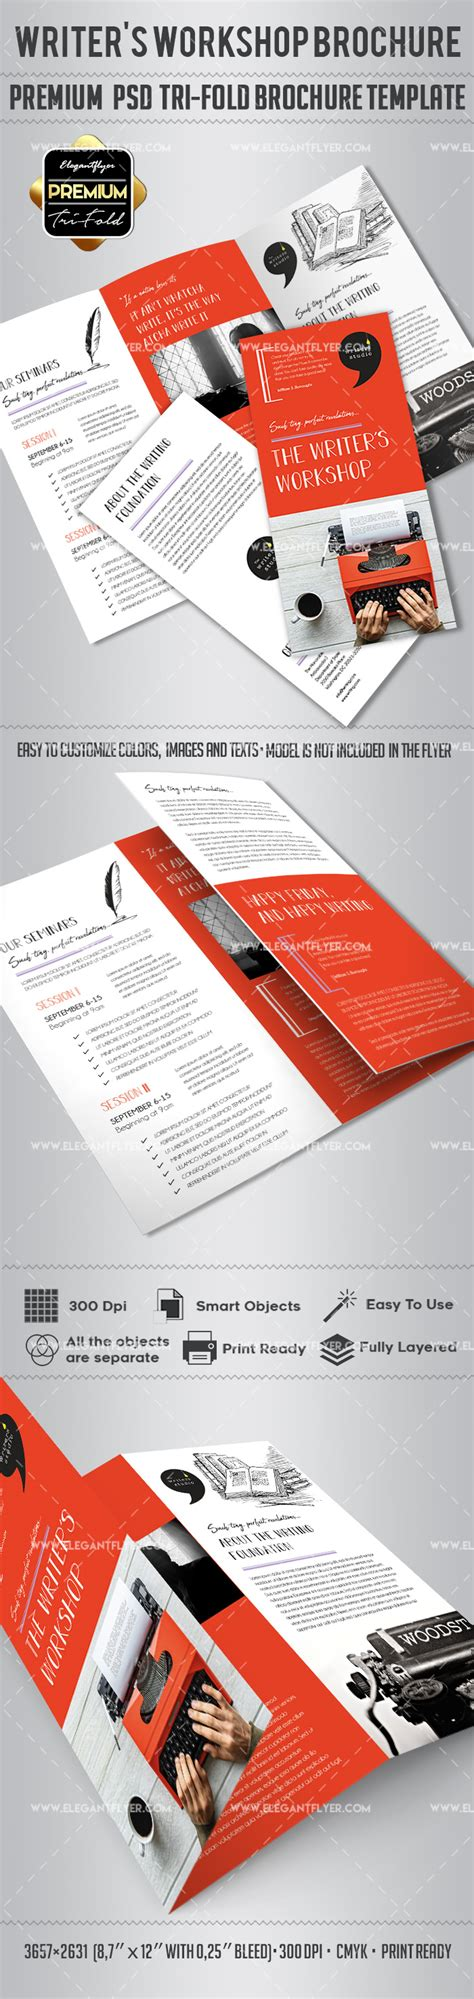 Writer S Workshop Brochure Template By Elegantflyer Workshop Brochure Template